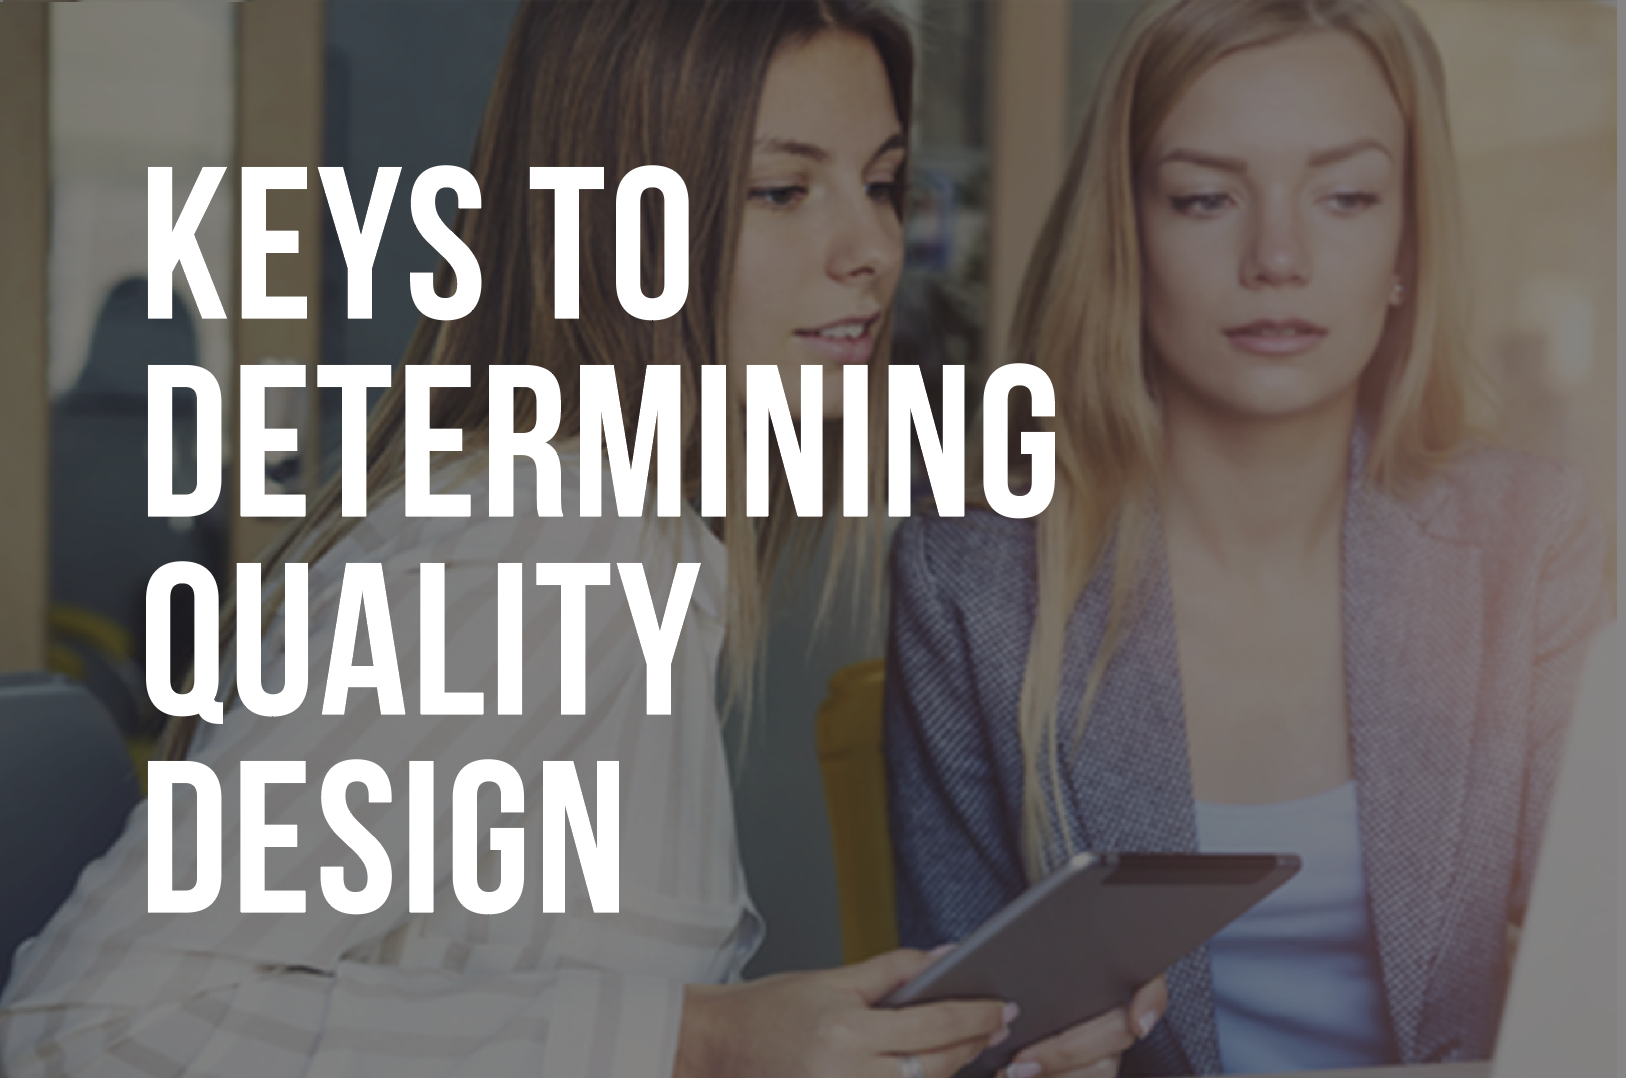 KEYS TO DETERMINING QUALITY DESIGN